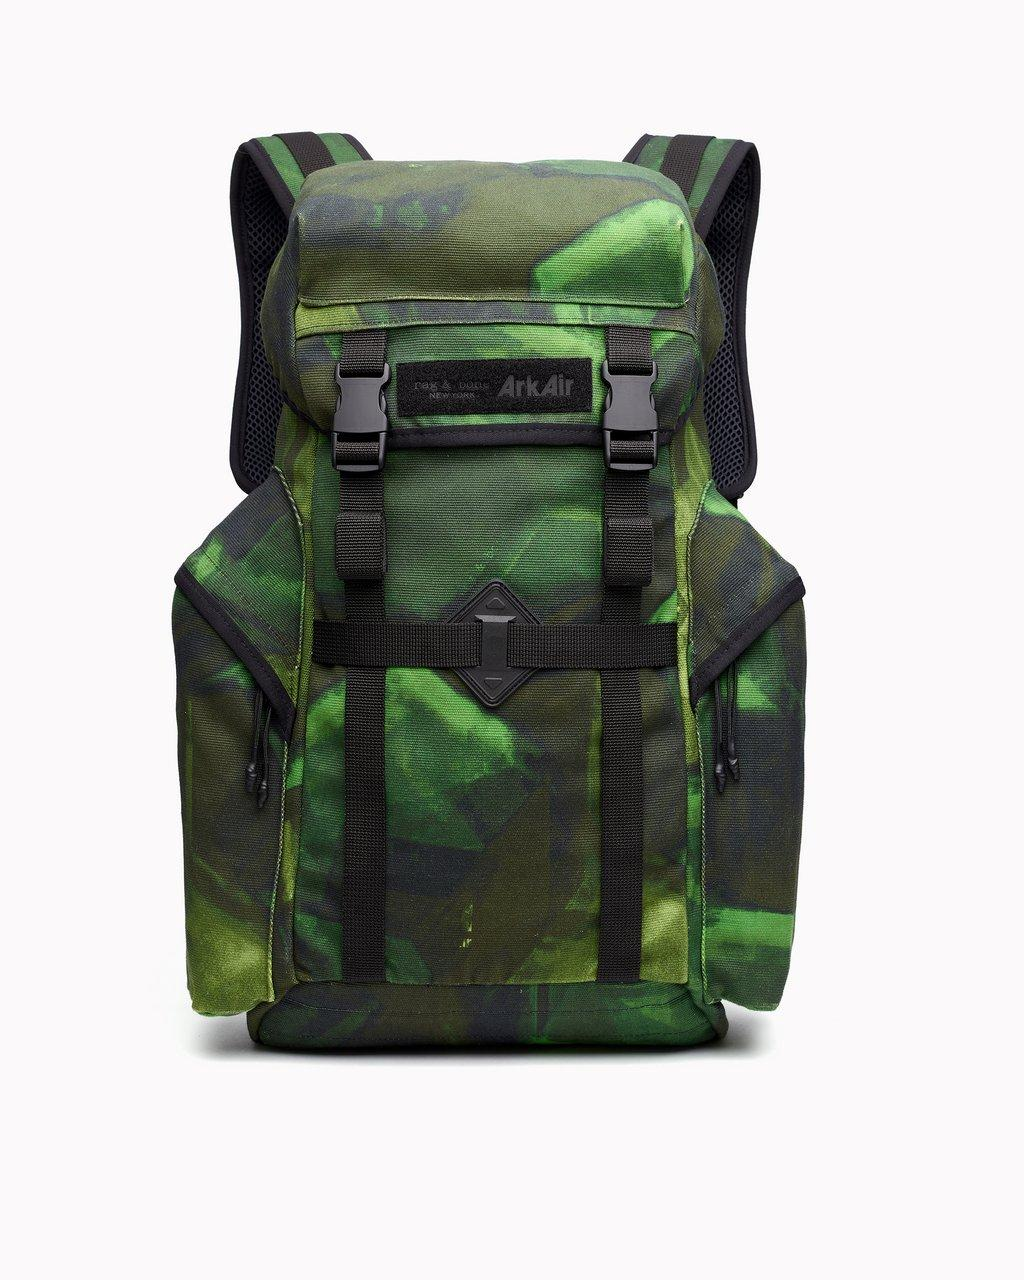 Arkair Backpack - Cotton Canvas